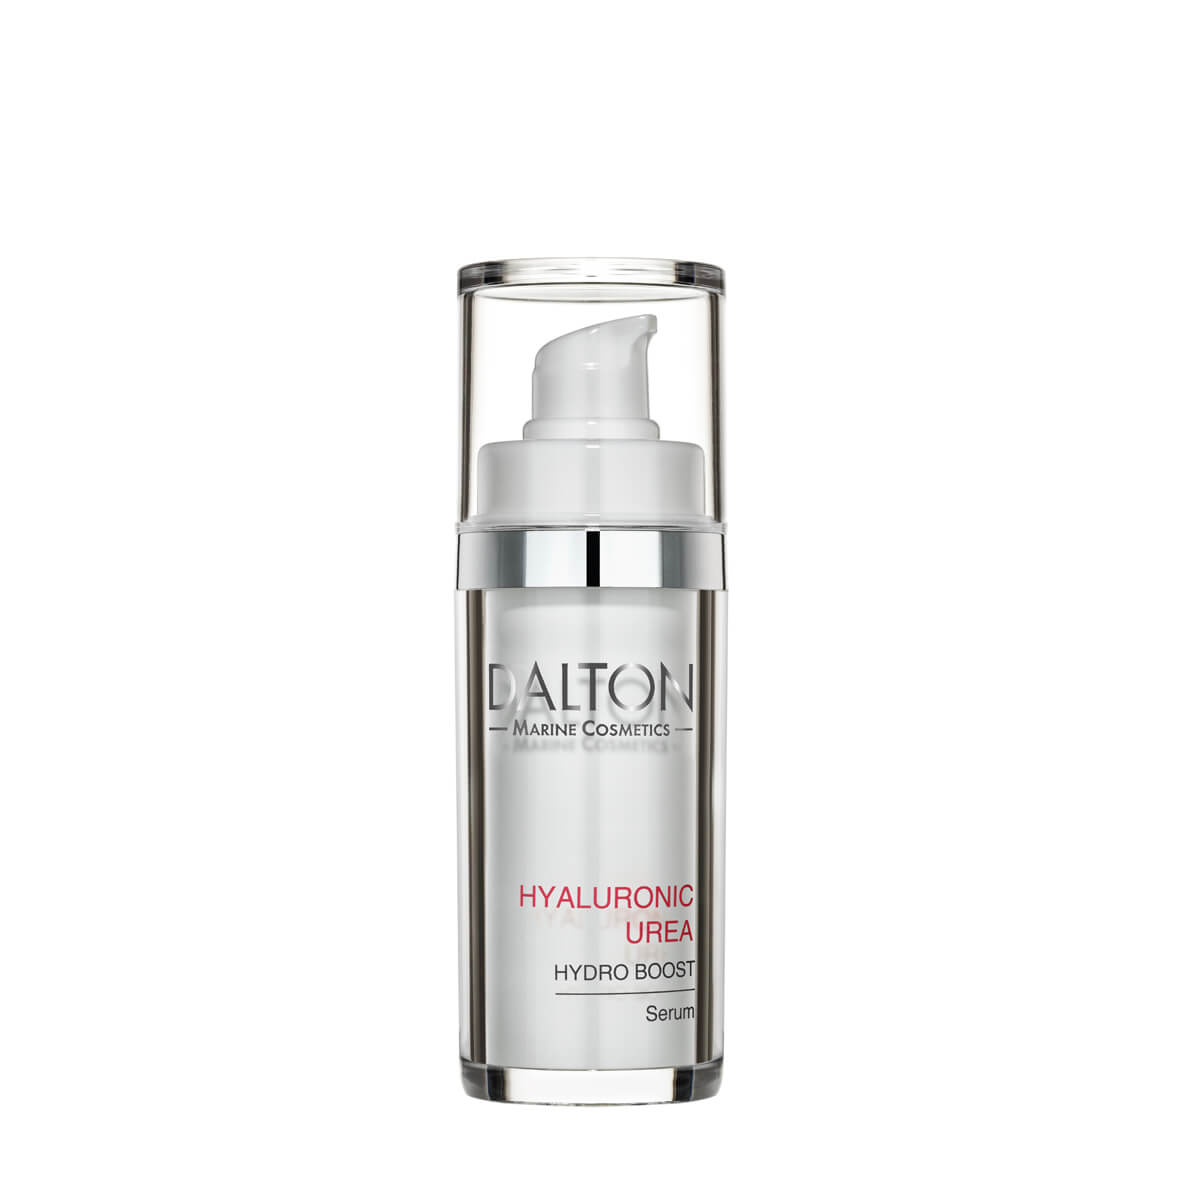 Hyaluronic Urea Serum 30ml - Era Cosmetics, Dalton Marine Cosmetics